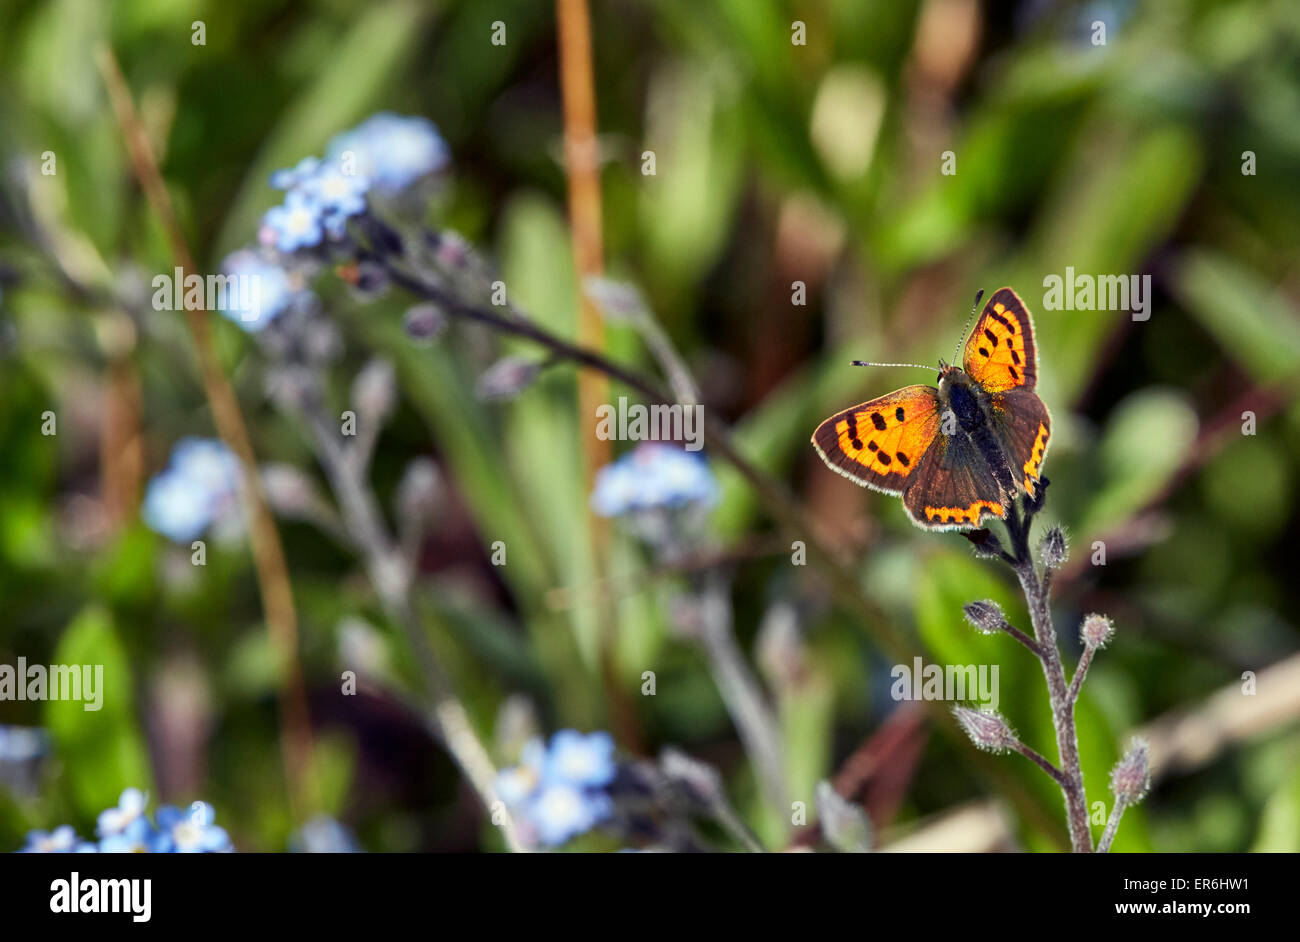 Small Copper on Forget-Me-Not flowers.  Fairmile Common, Esher, Surrey, England. Stock Photo